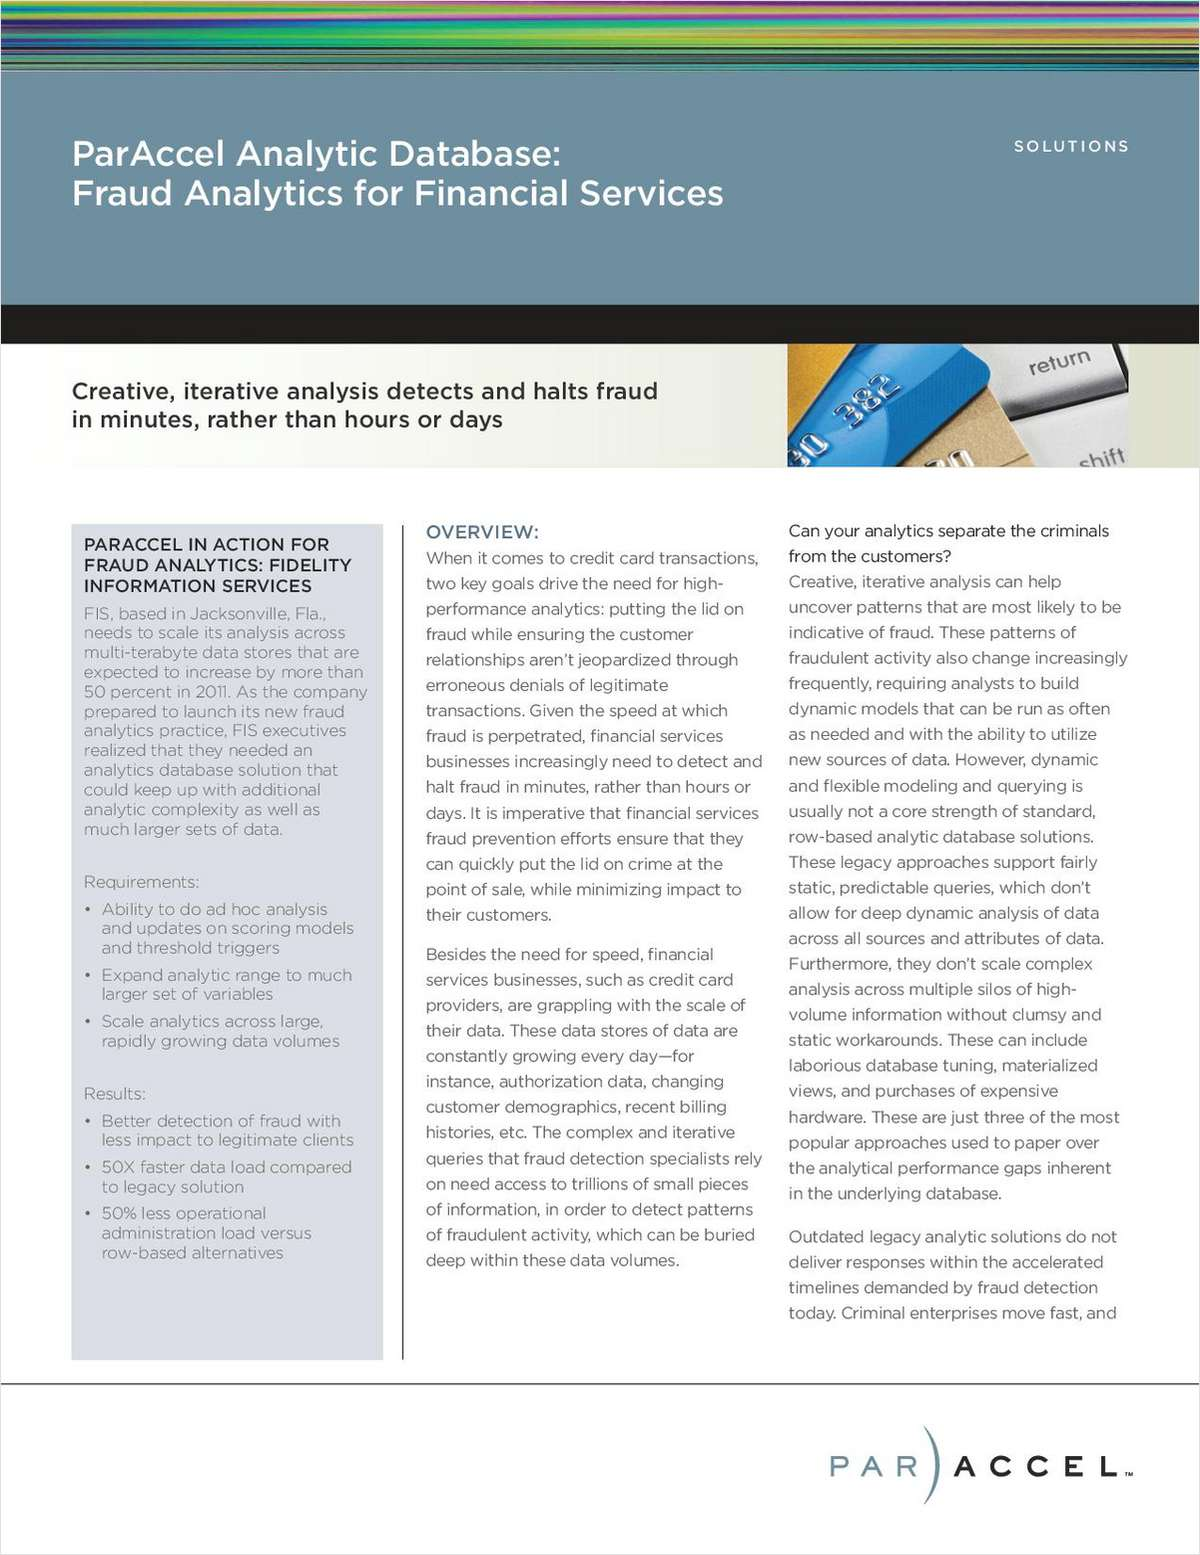 Paraccel Analytic Database: Fraud Analytics for Financial Services